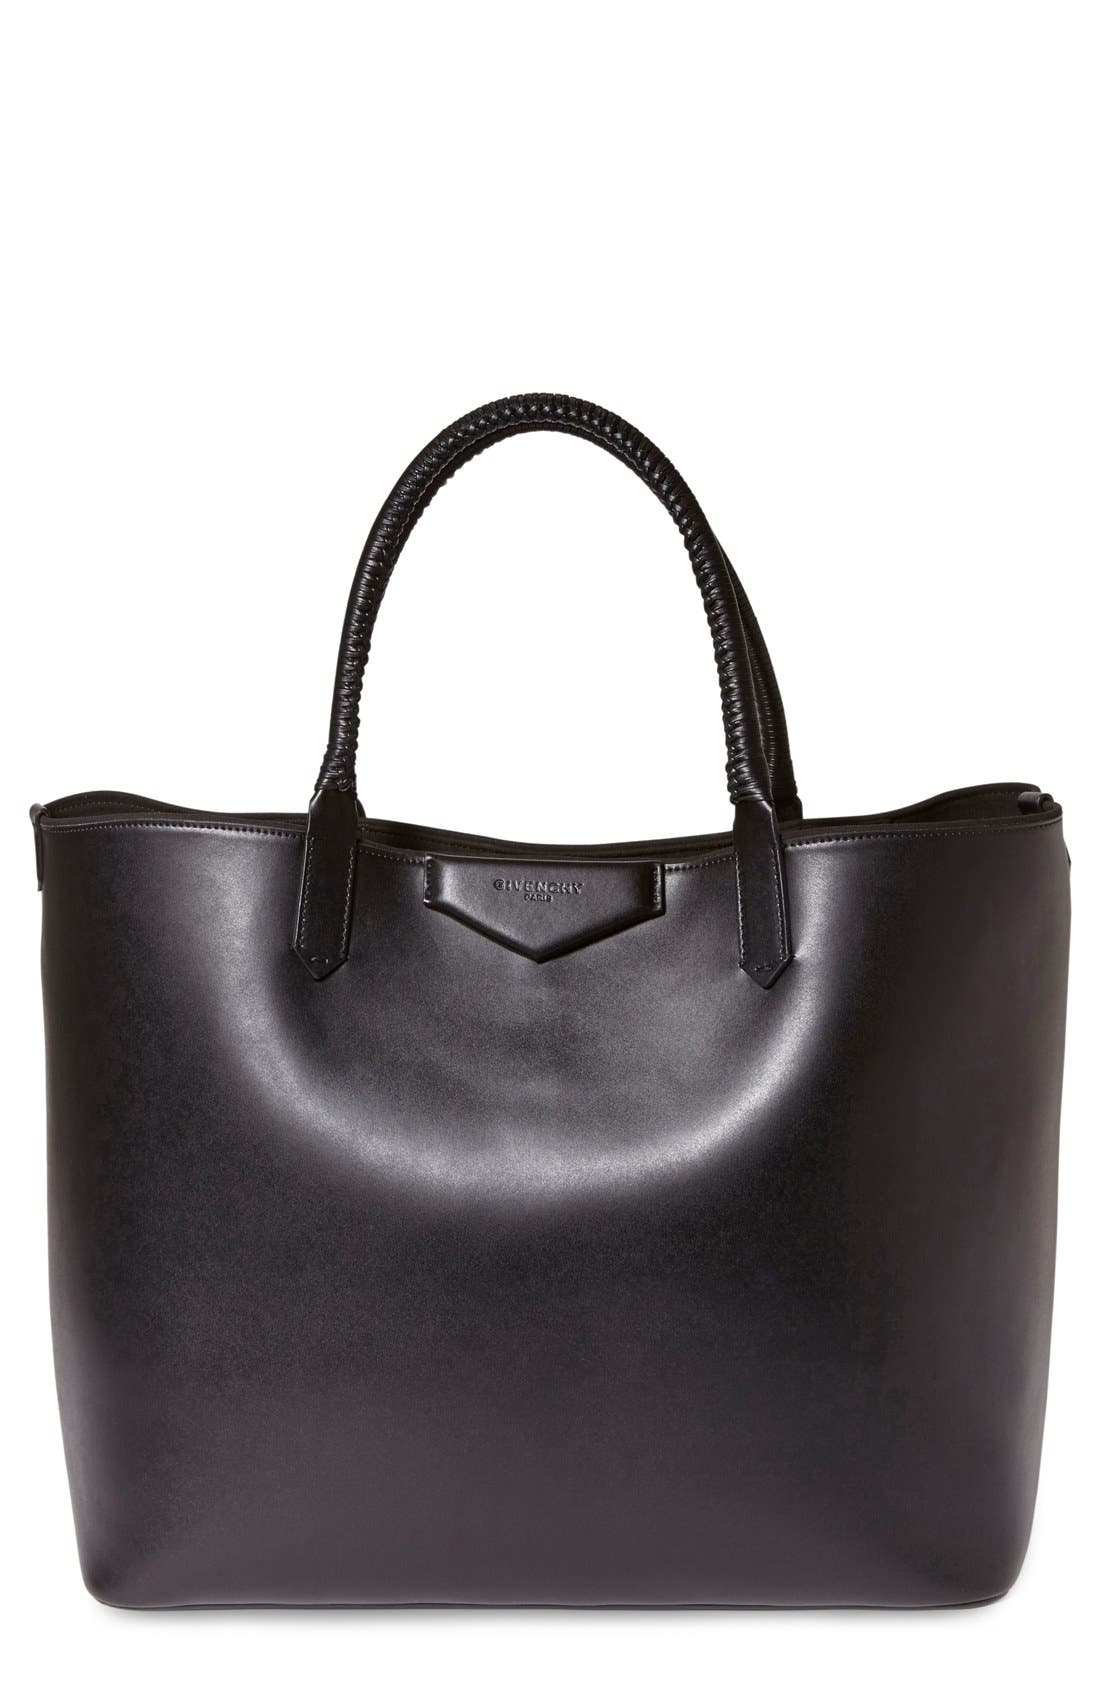 Main Image - Givenchy 'Large Antigona' Leather Shopper